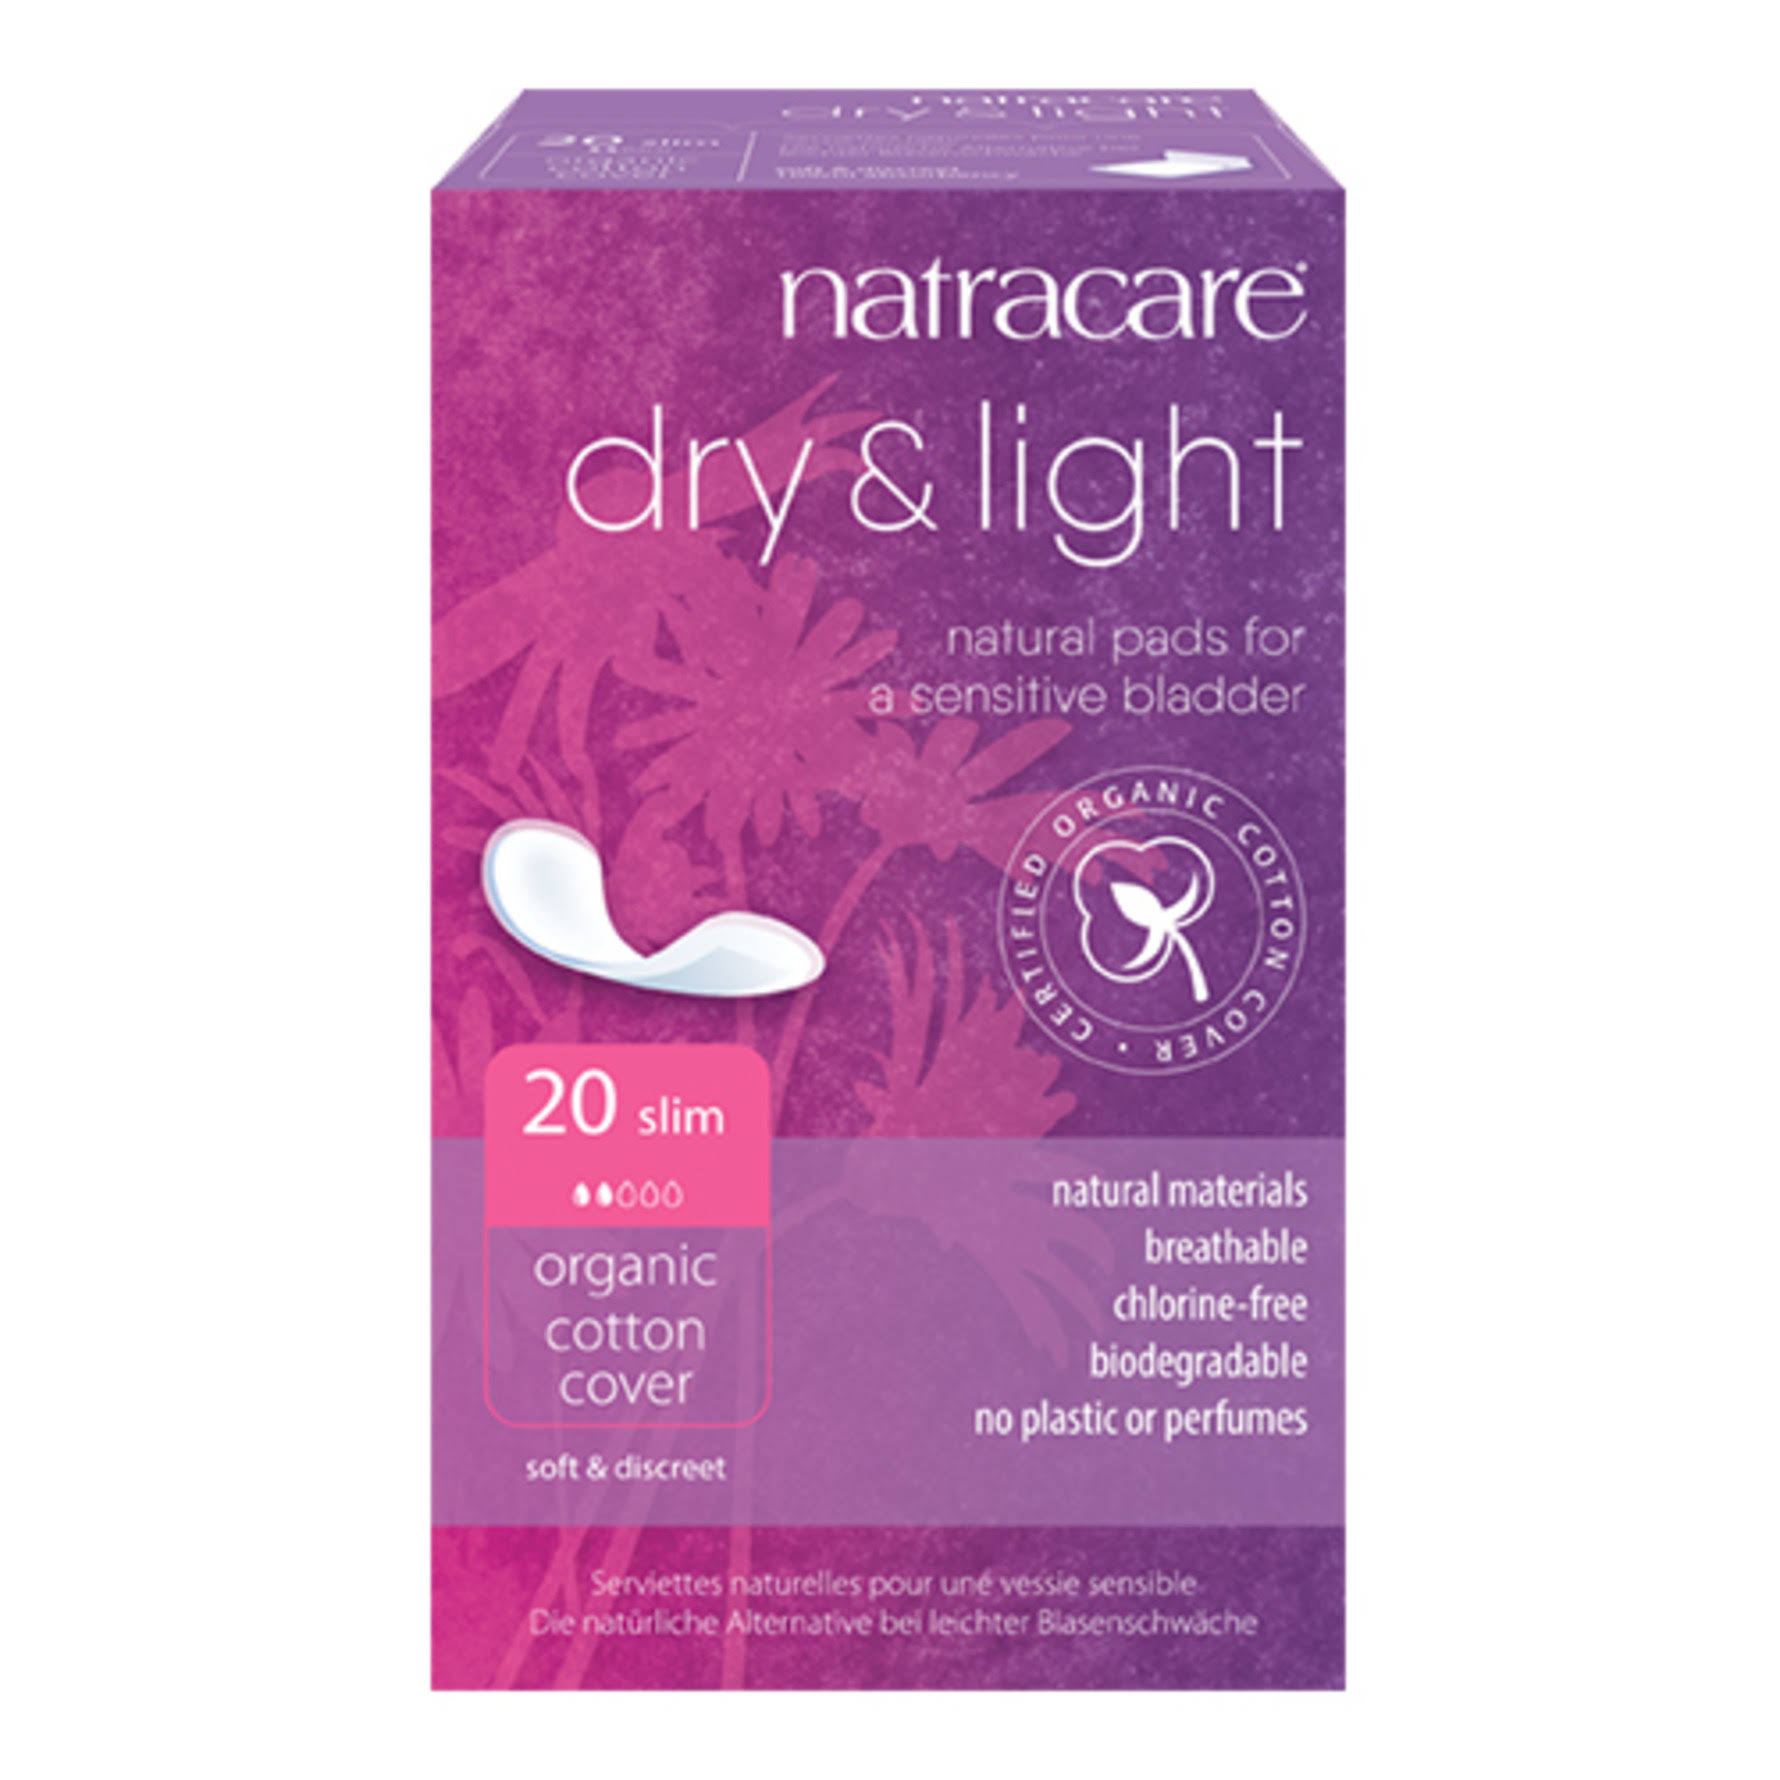 Natracare 57136 Dry and Light Natural Incontinence Pads - 20ct